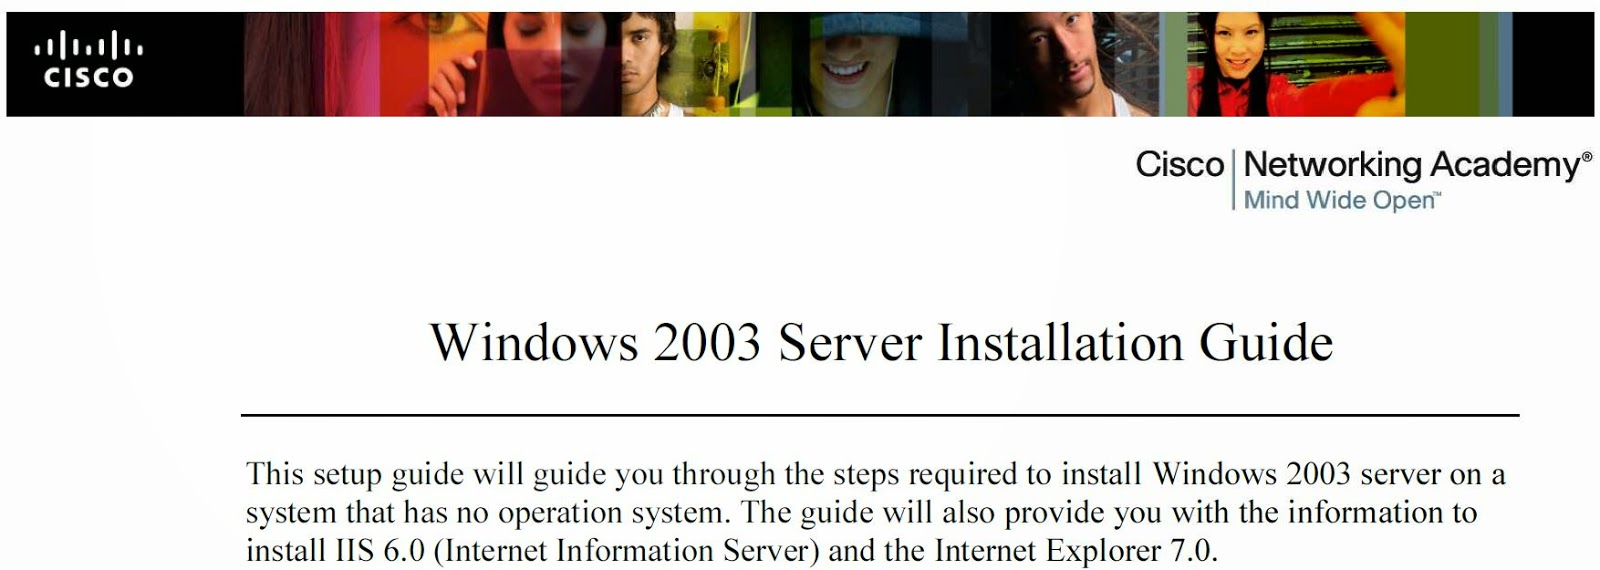 Windows 2003 Server Installation Guide